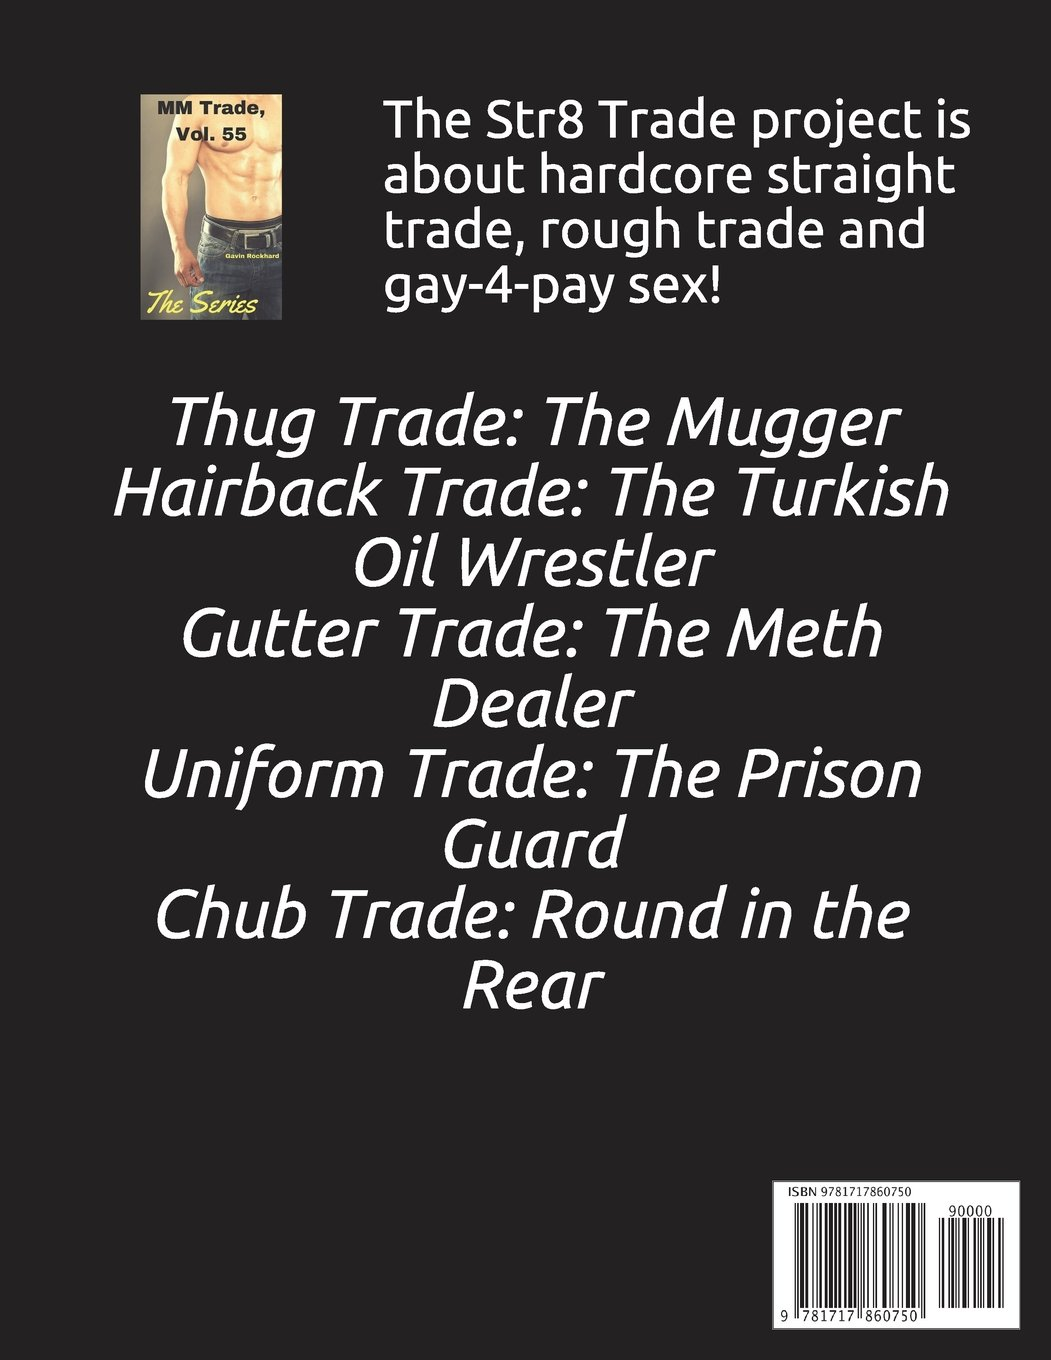 Amazon.in: Buy MM Trade, Vol. 55: The Series Book Online at Low Prices in  India | MM Trade, Vol. 55: The Series Reviews & Ratings